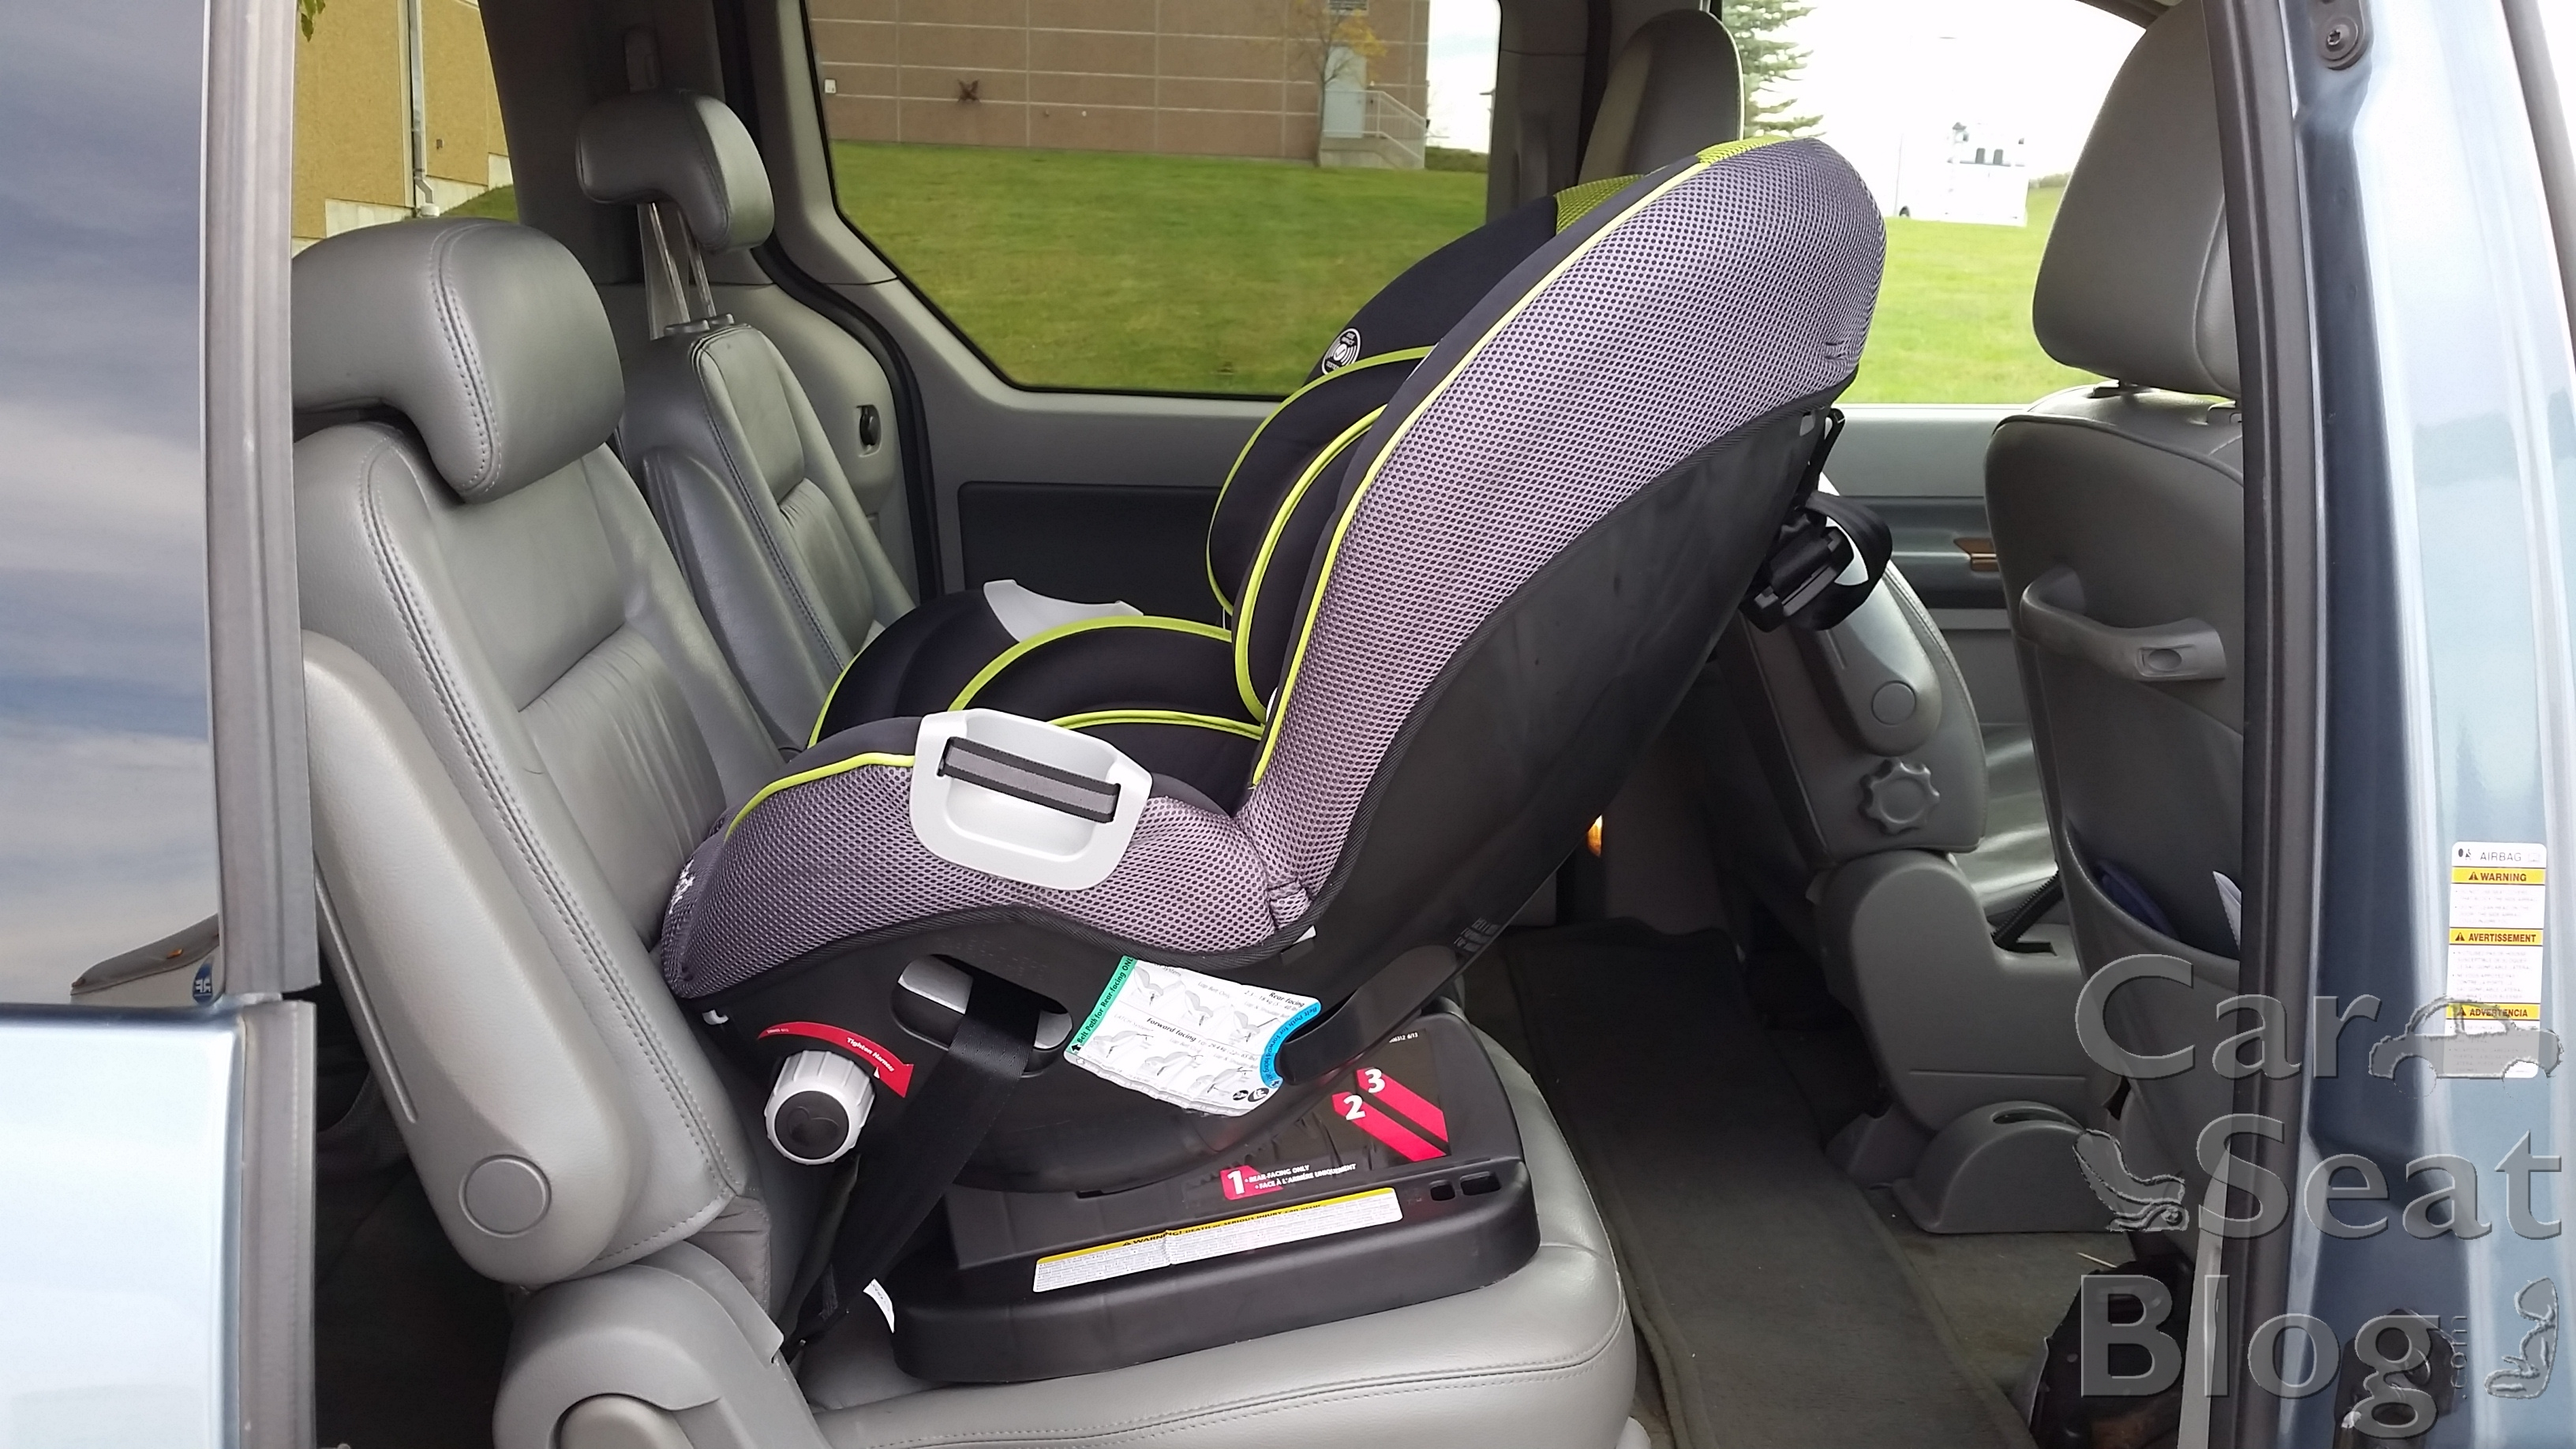 Evenflo Triumph & CarseatBlog: The Most Trusted Source for Car Seat Reviews Ratings ... islam-shia.org